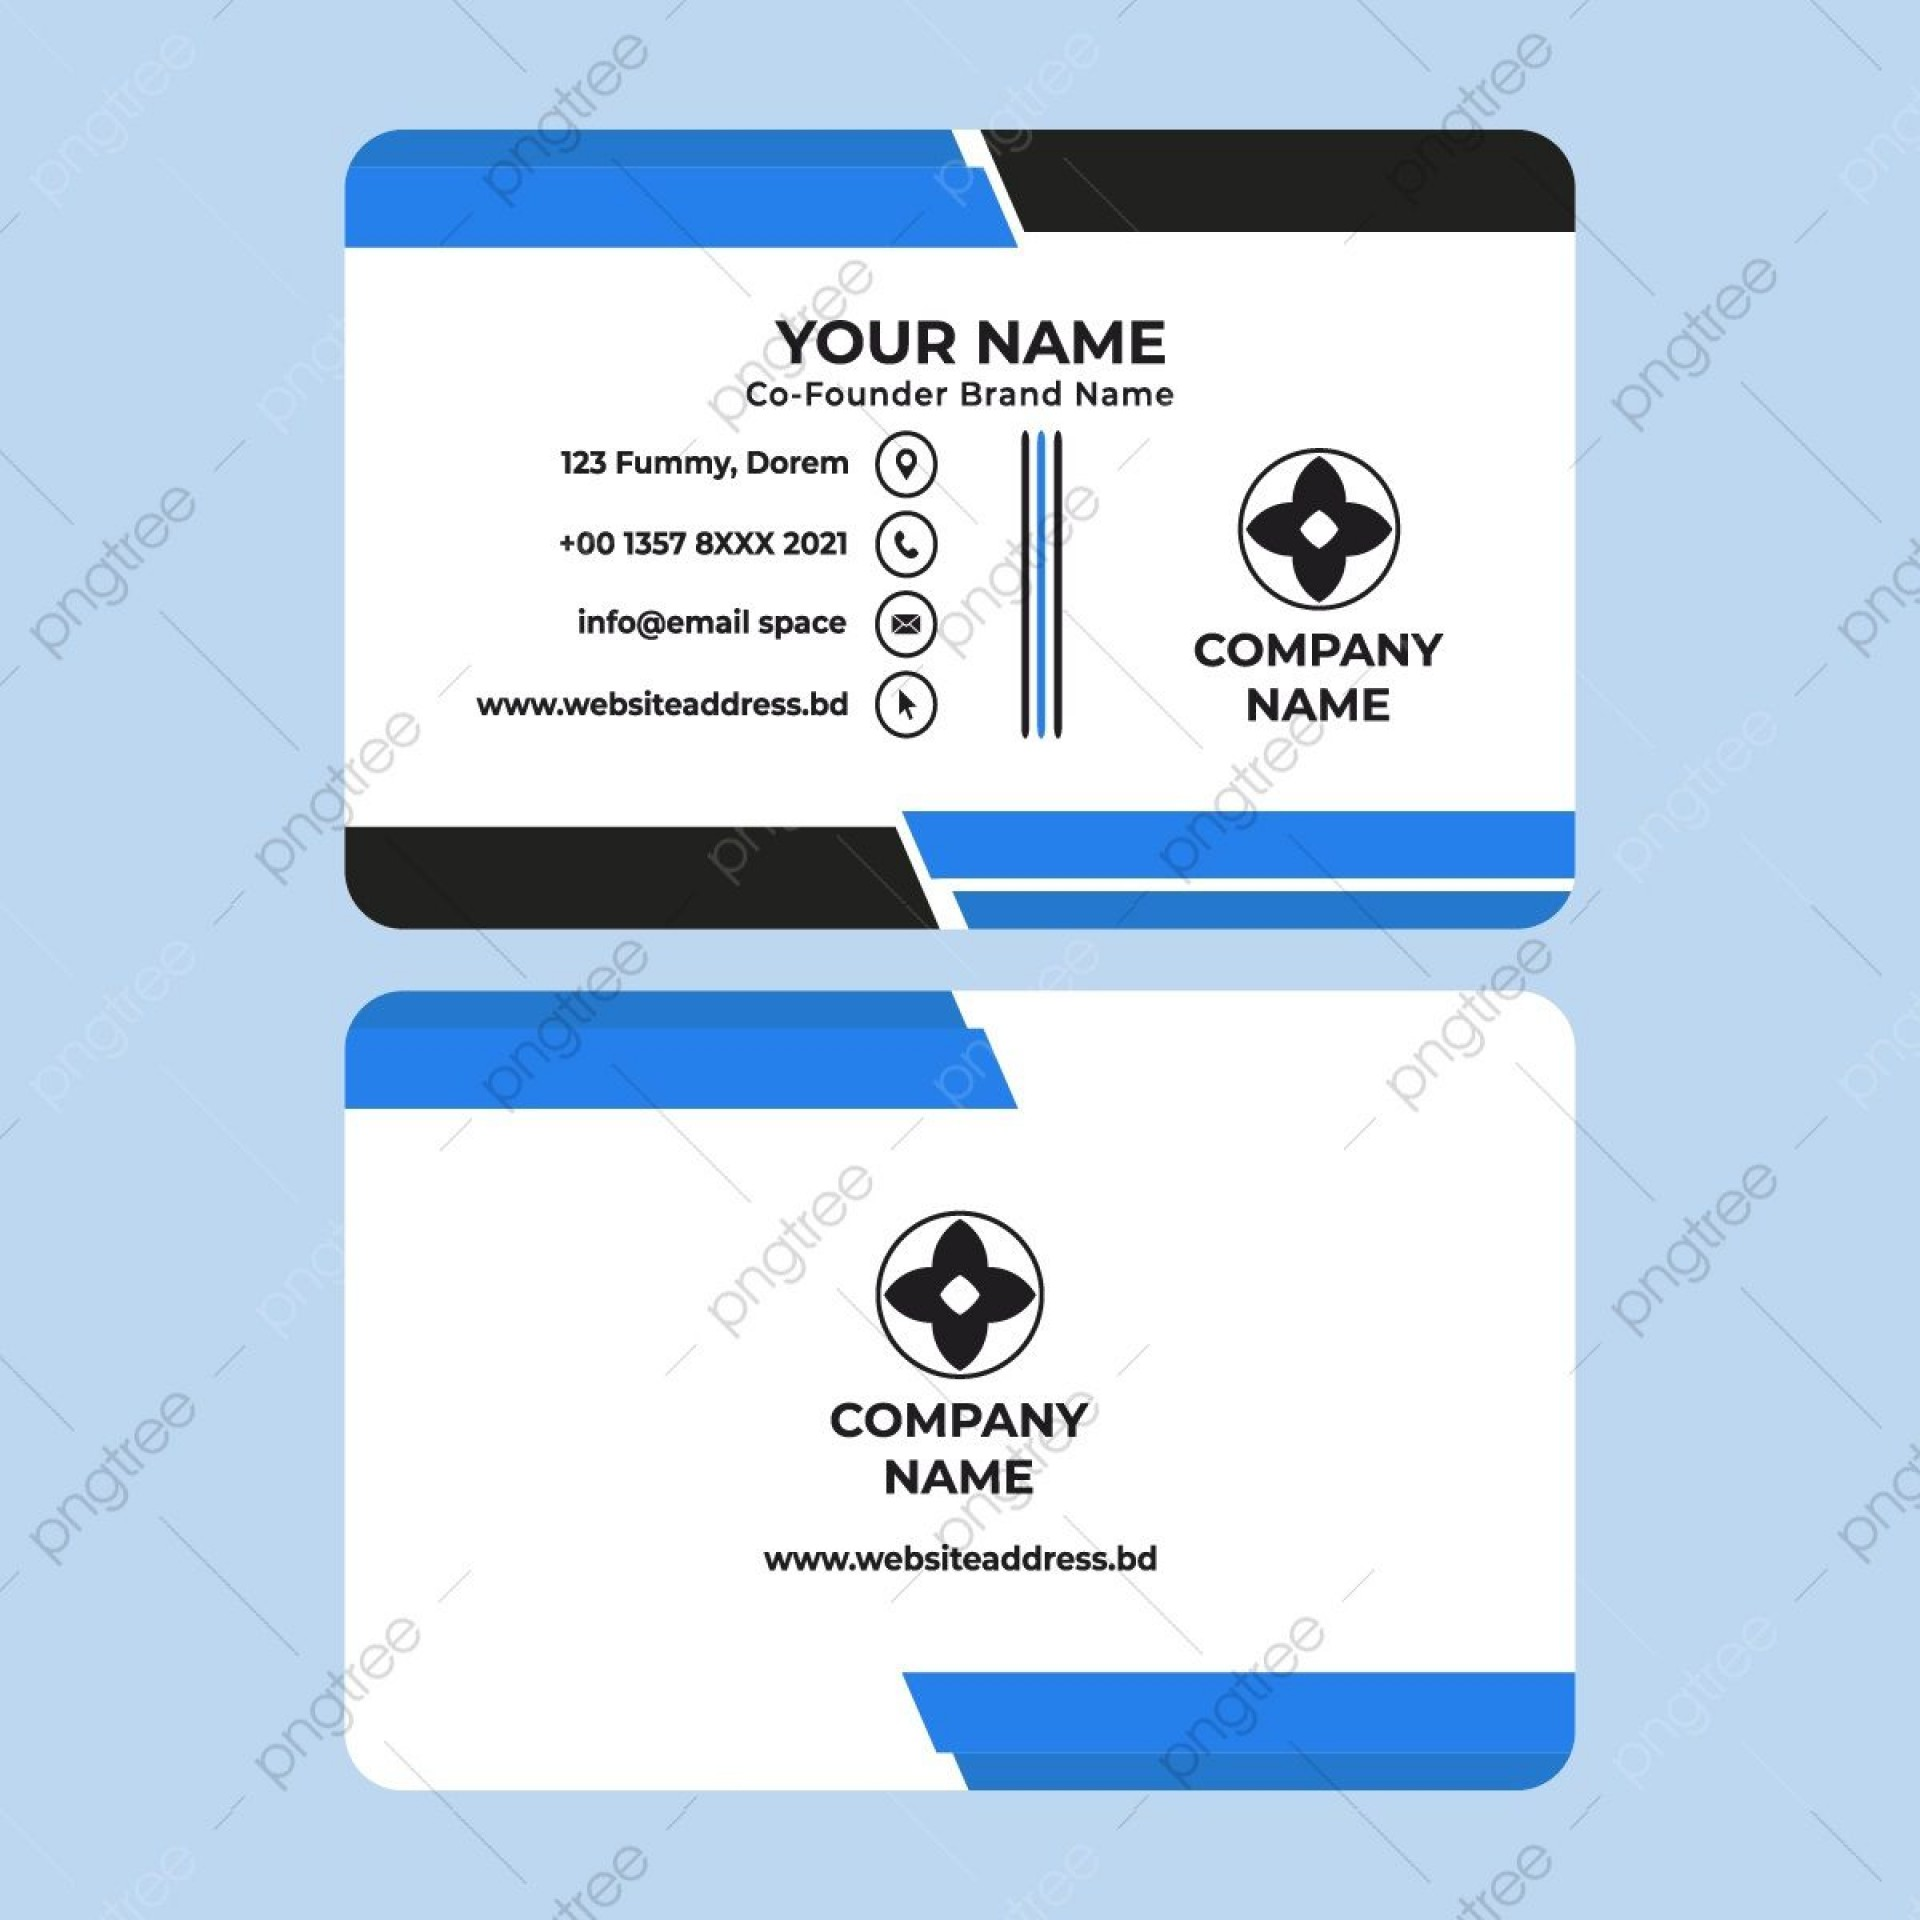 009 Fearsome Simple Visiting Card Template Highest Clarity  Templates Busines Psd Design File Free Download1920